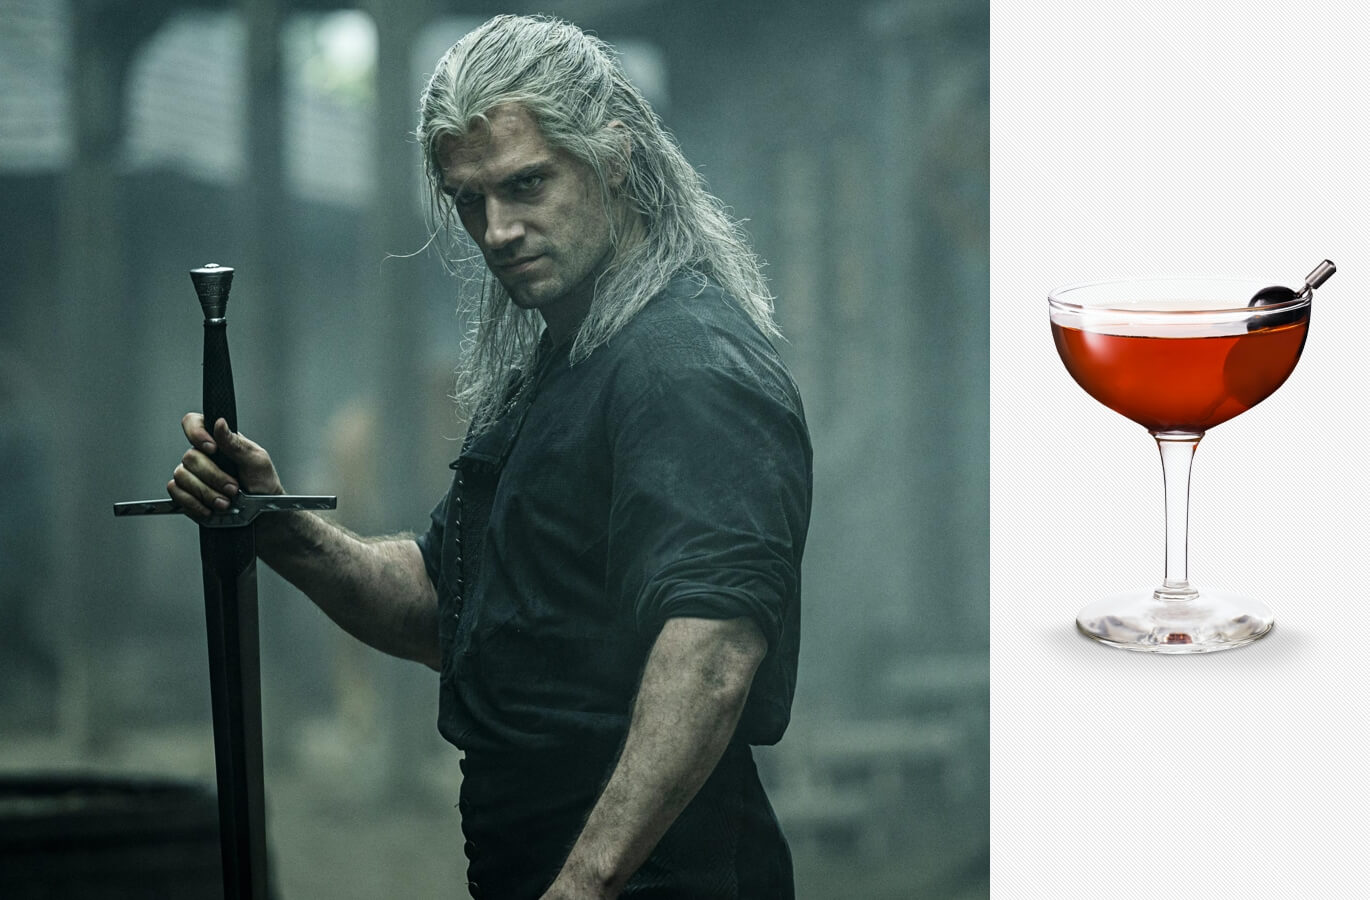 The Witcher on Netflix and a Hunter cocktail